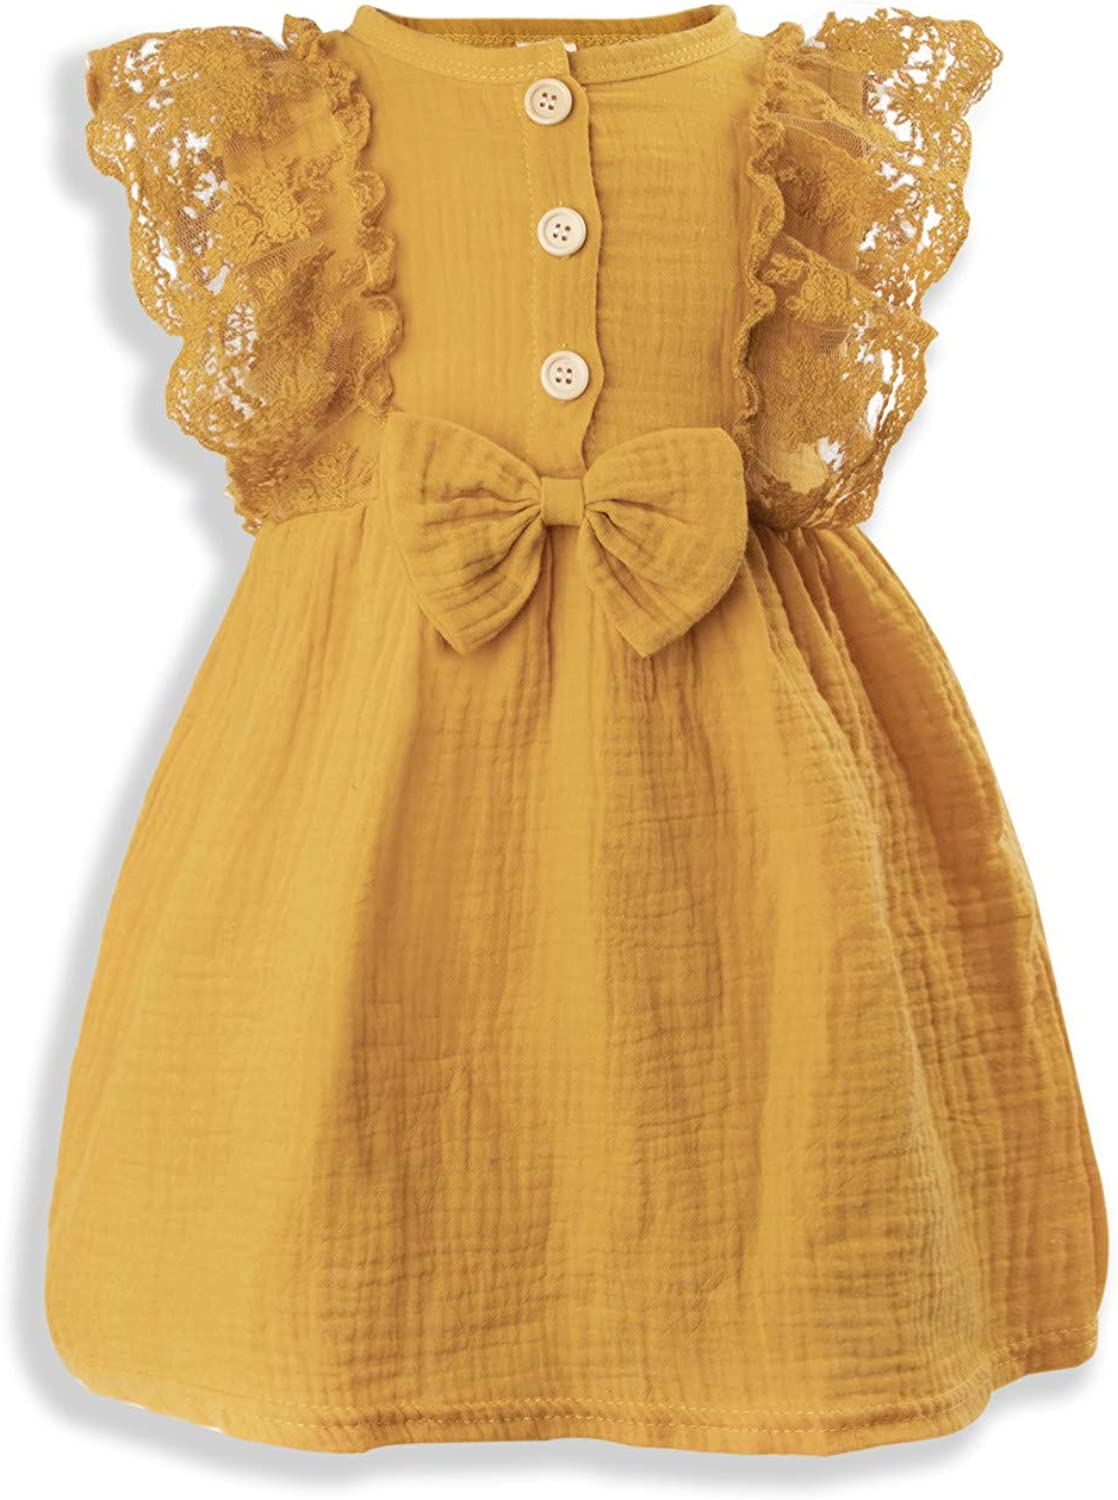 Toddler Baby Girl Clothes Summer Dress Lace Ruffle Sleeveless Bow Cotton Comfortable Cute Kids Dress Sundress Outfits